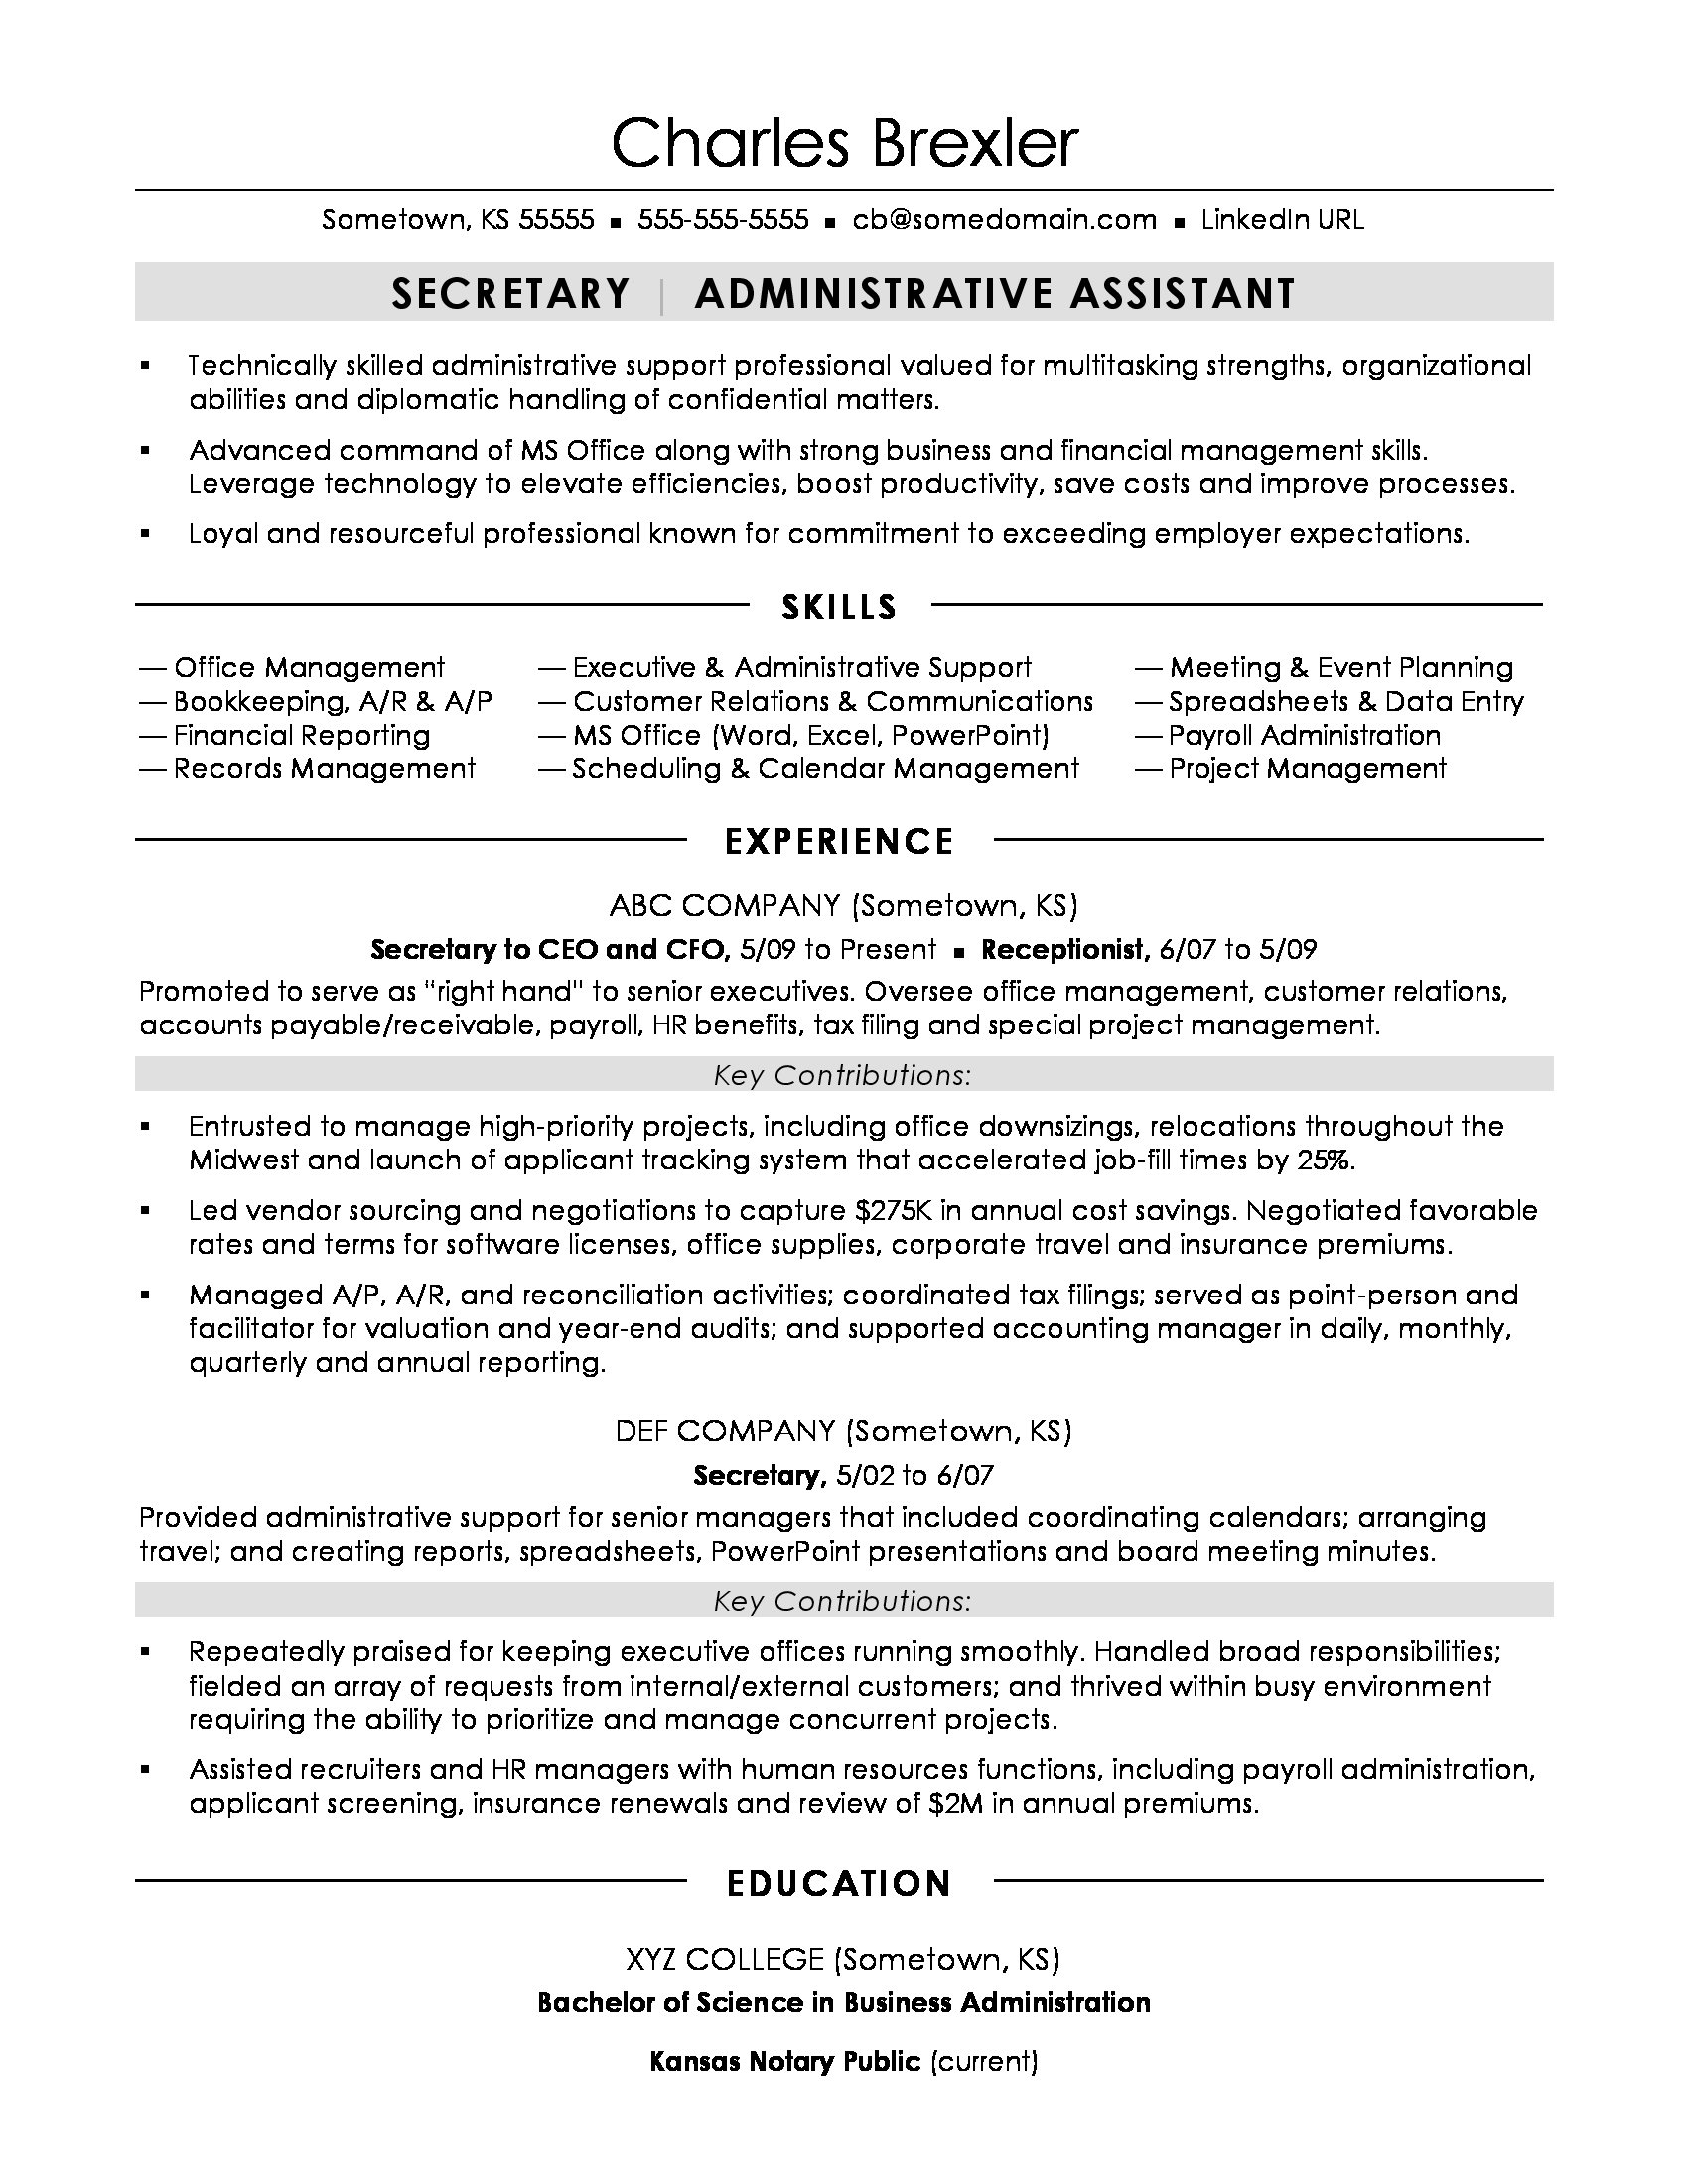 secretary resume sample - Secretary Resume Examples